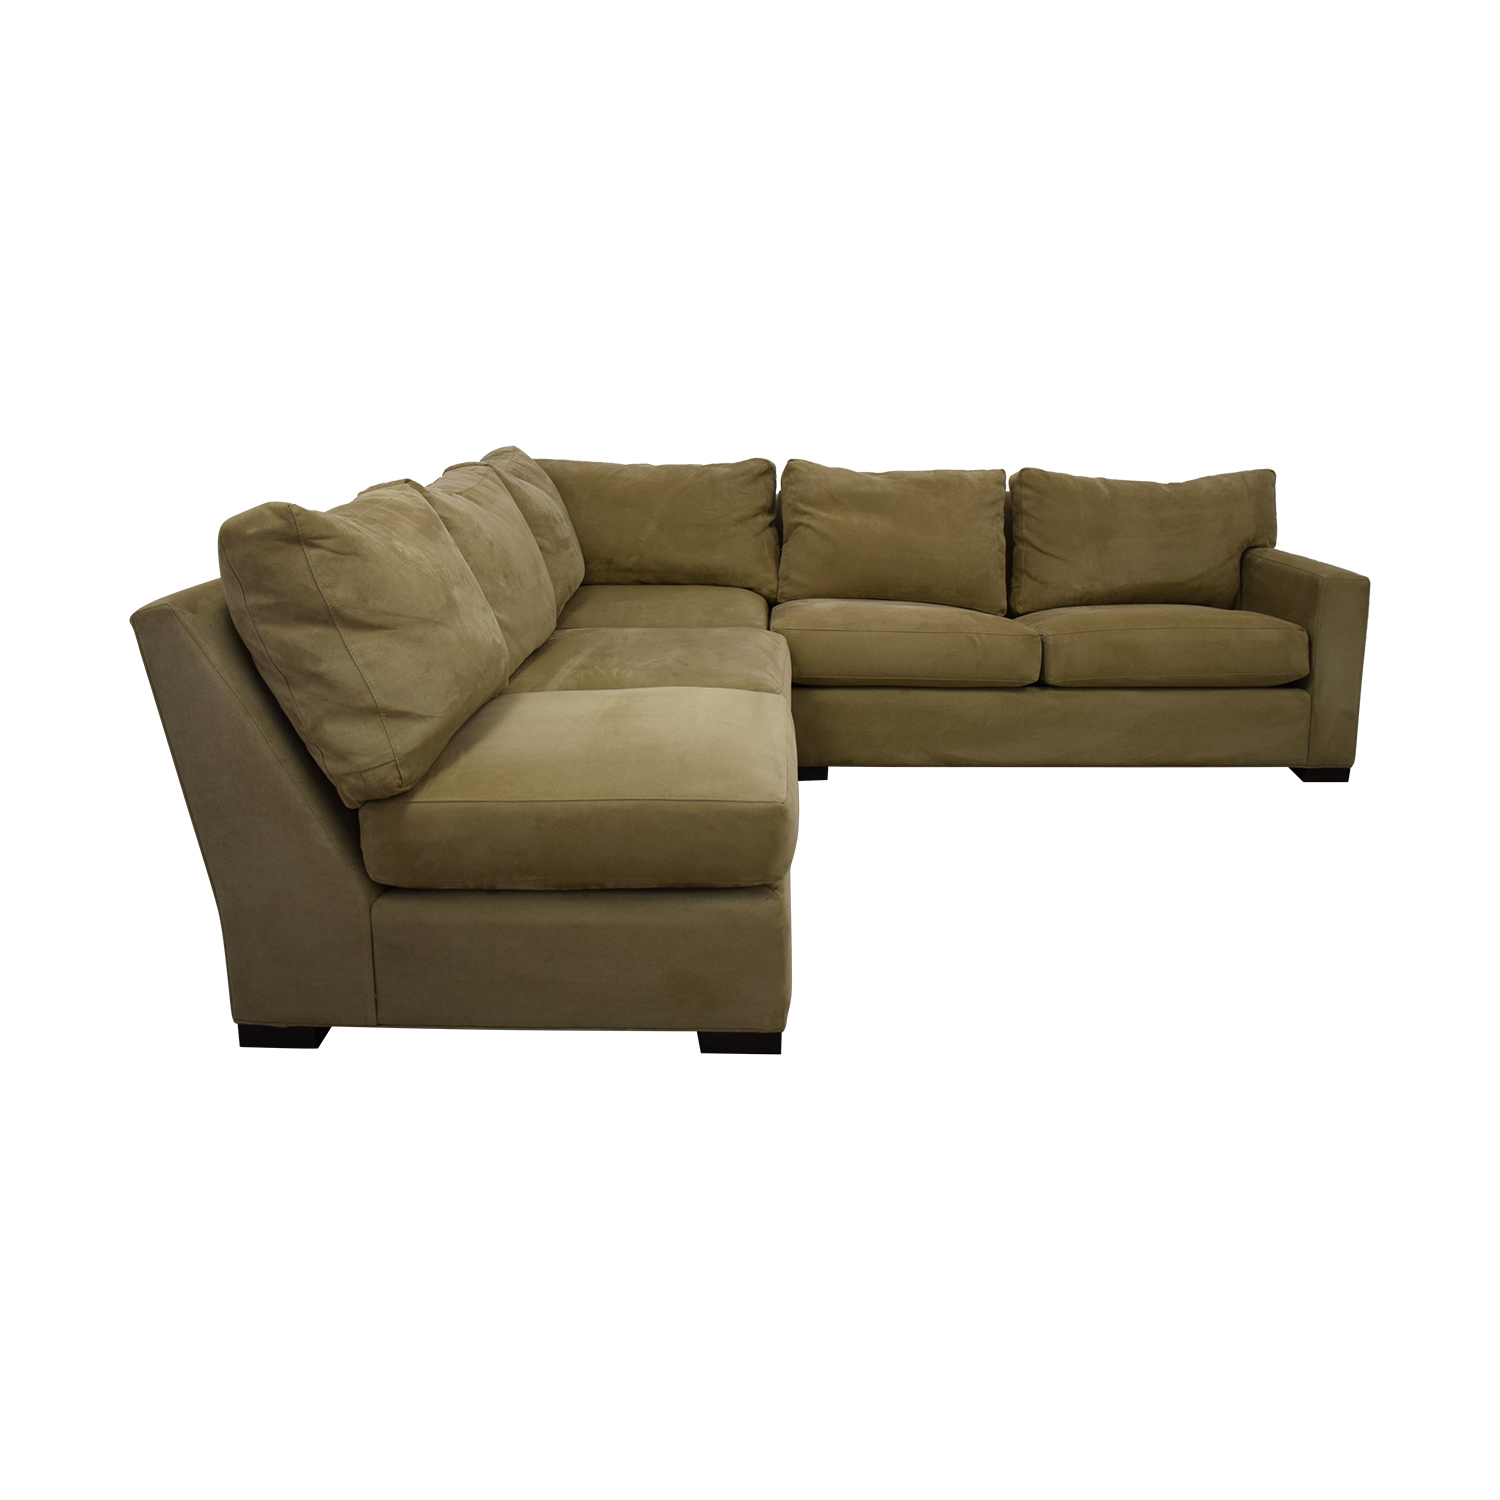 shop Crate & Barrel Axis Beige Three Piece Sleeper Sectional Sofa Crate & Barrel